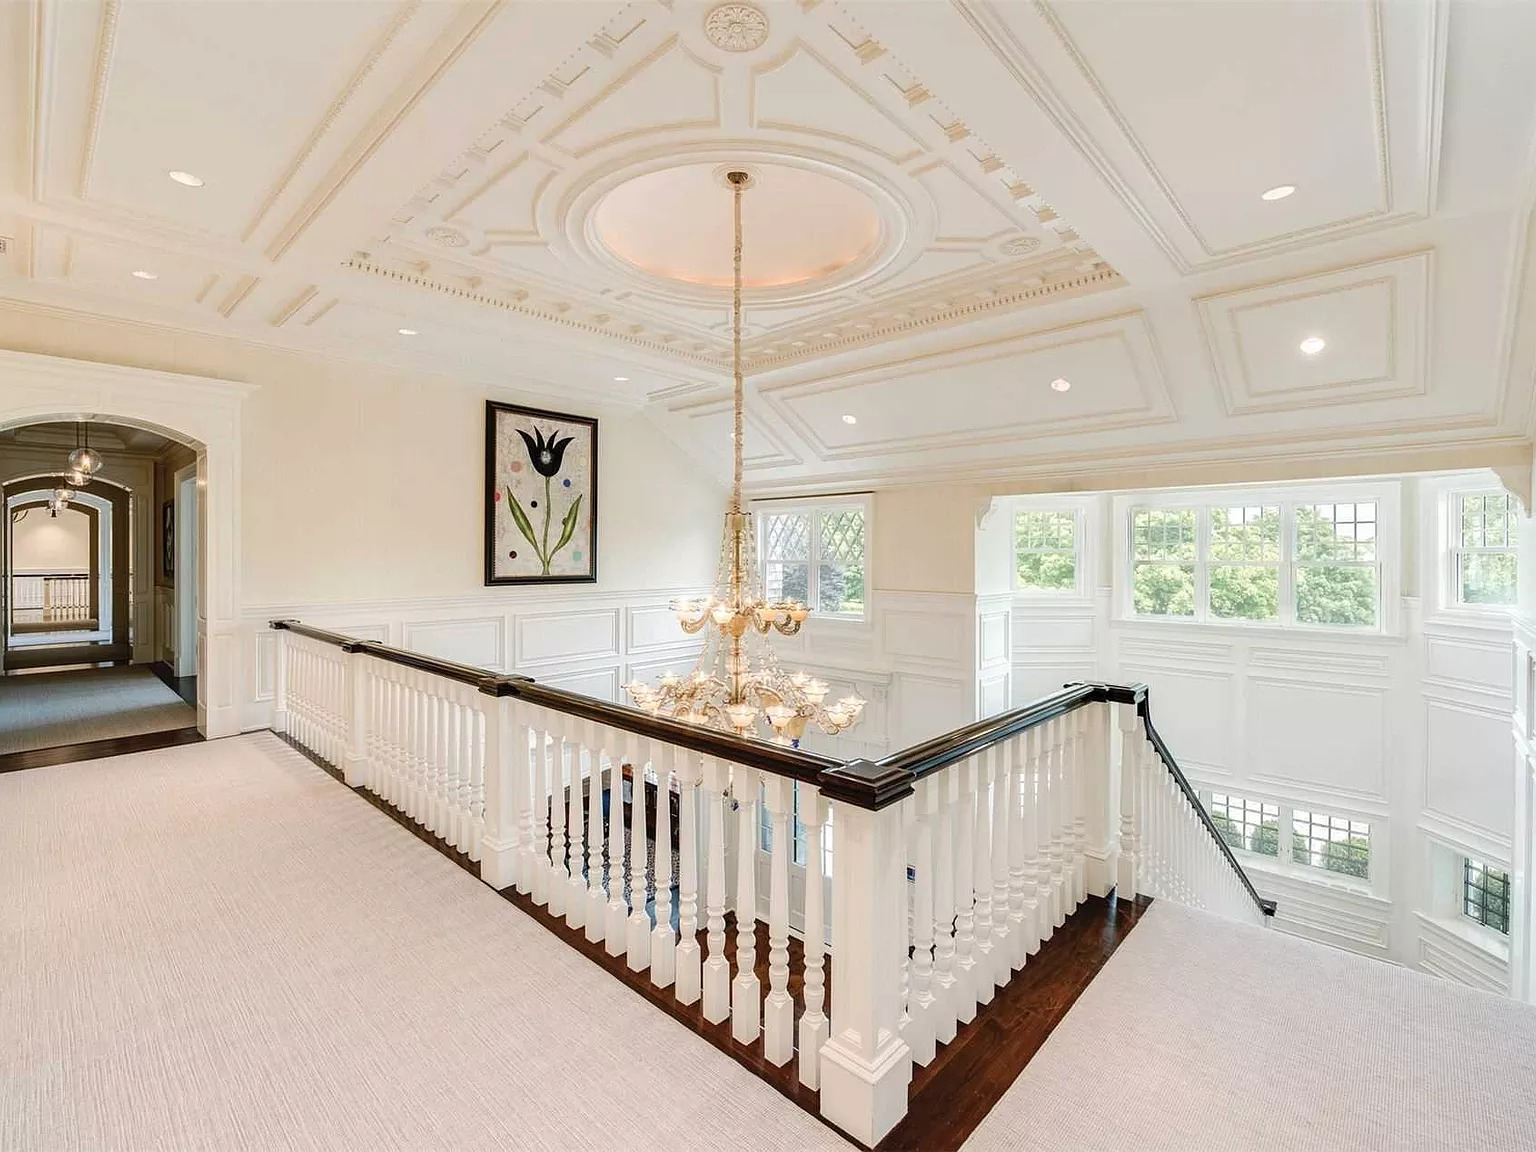 612 Halsey Ln, Water Mill, NY 11932 - $39,995,000 home for sale, house images, photos and pics gallery